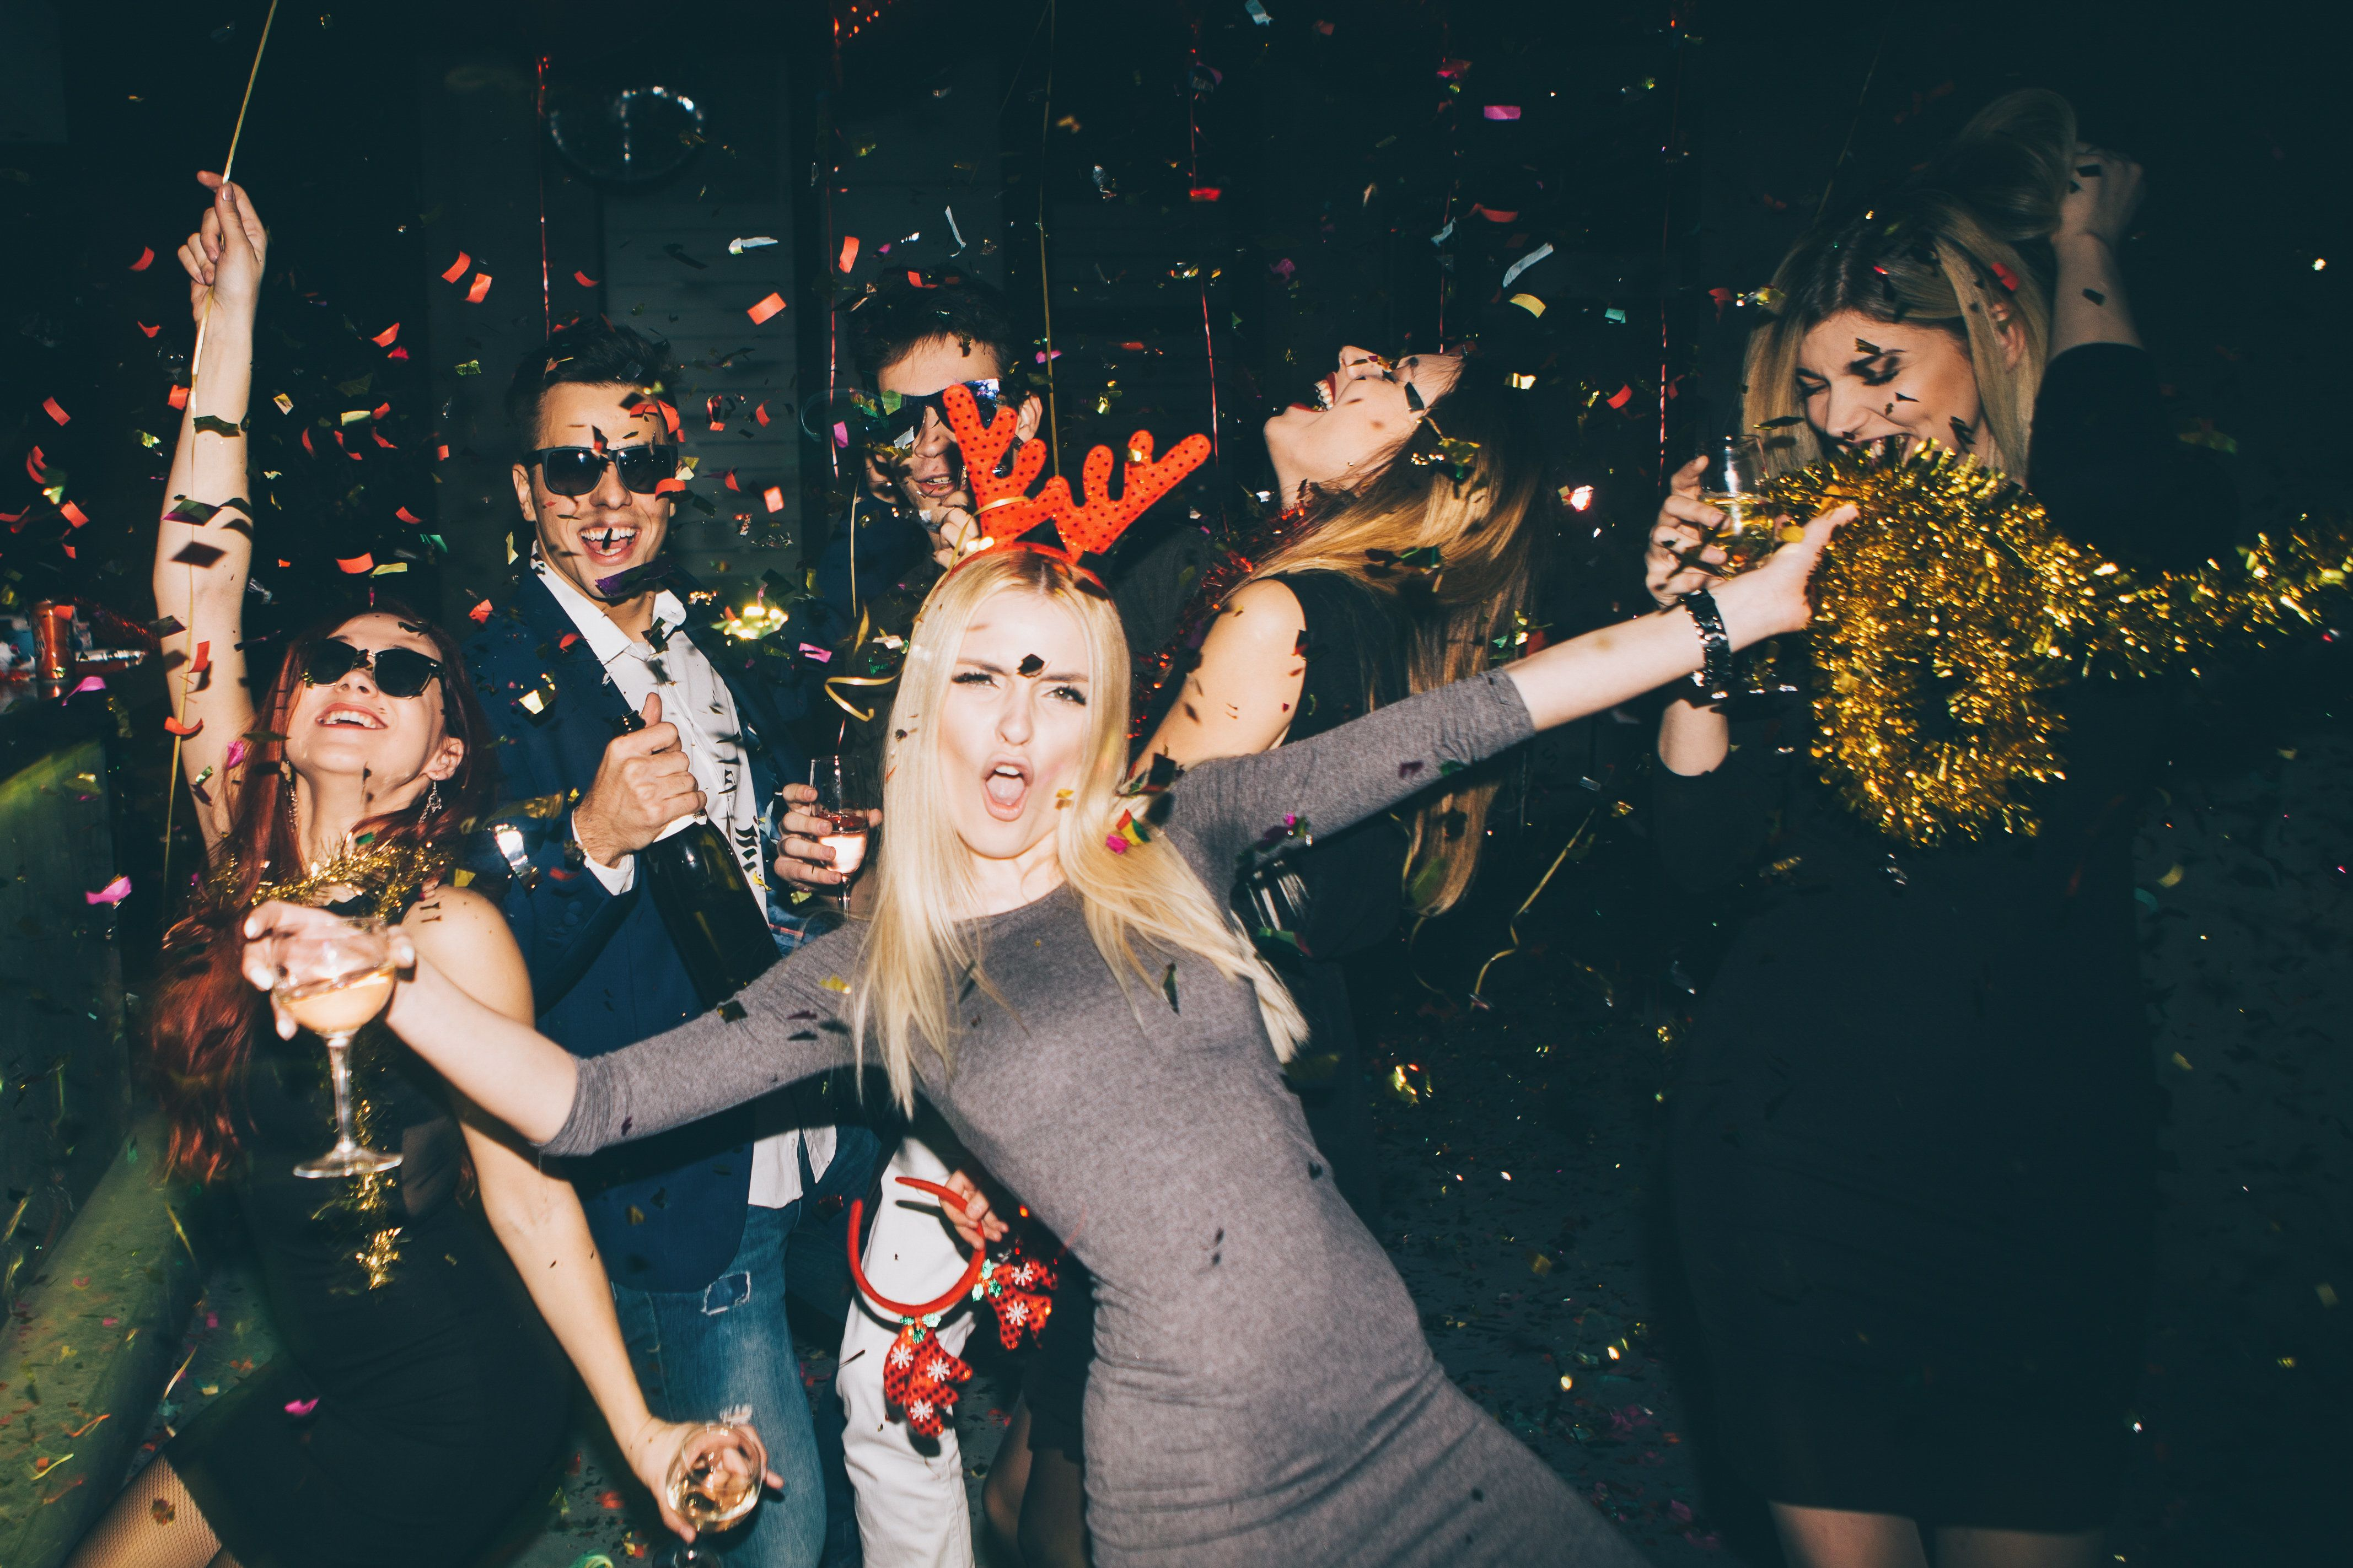 Quarter Of Employees Say They'll Pull A Sickie To Recover From Work Christmas Party